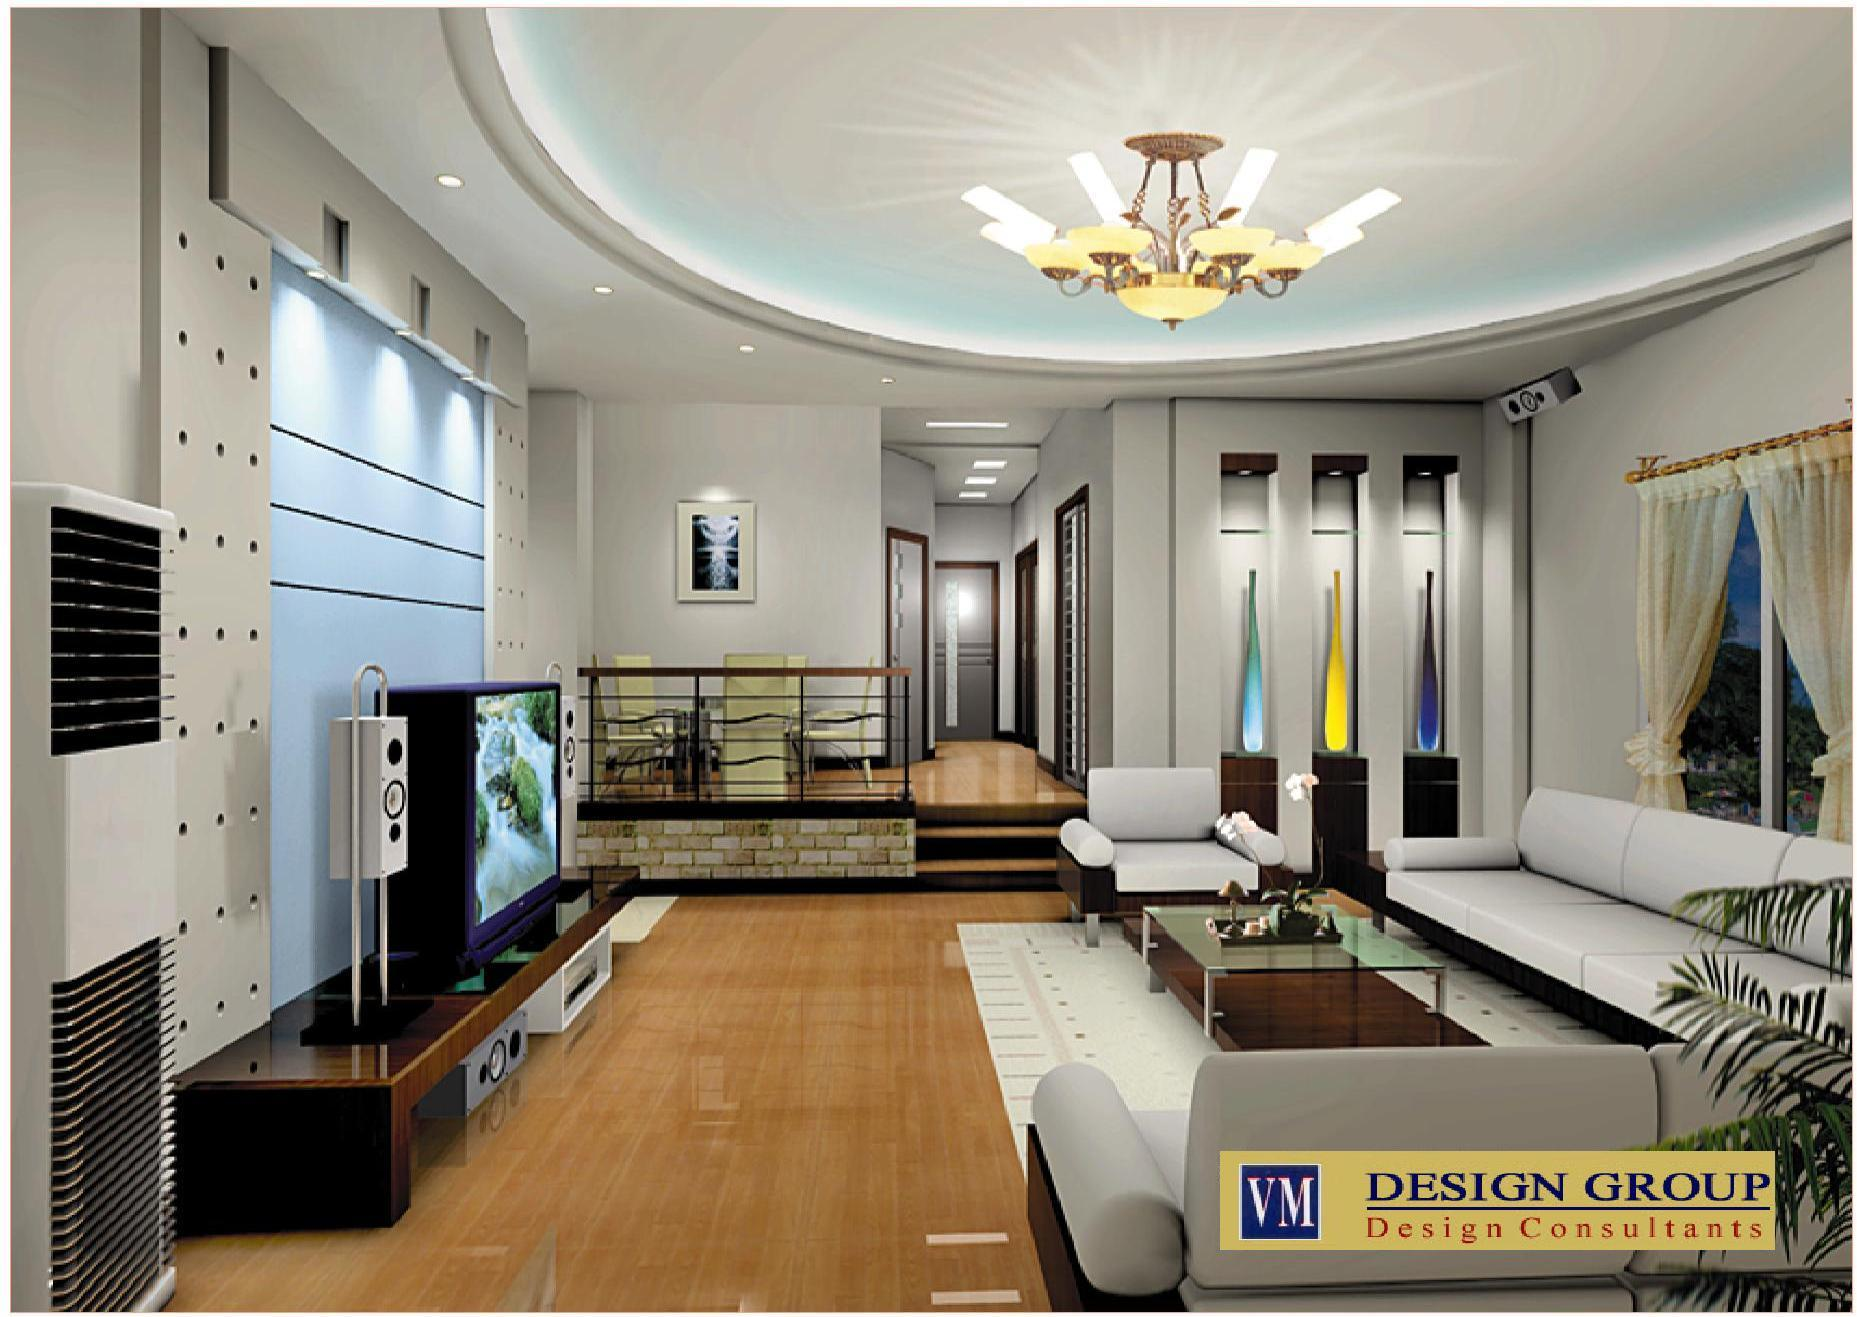 Beautiful Interior_Design_Delhi11857x1317 254 KB. BACHELOR OF INTERIOR DESIGN